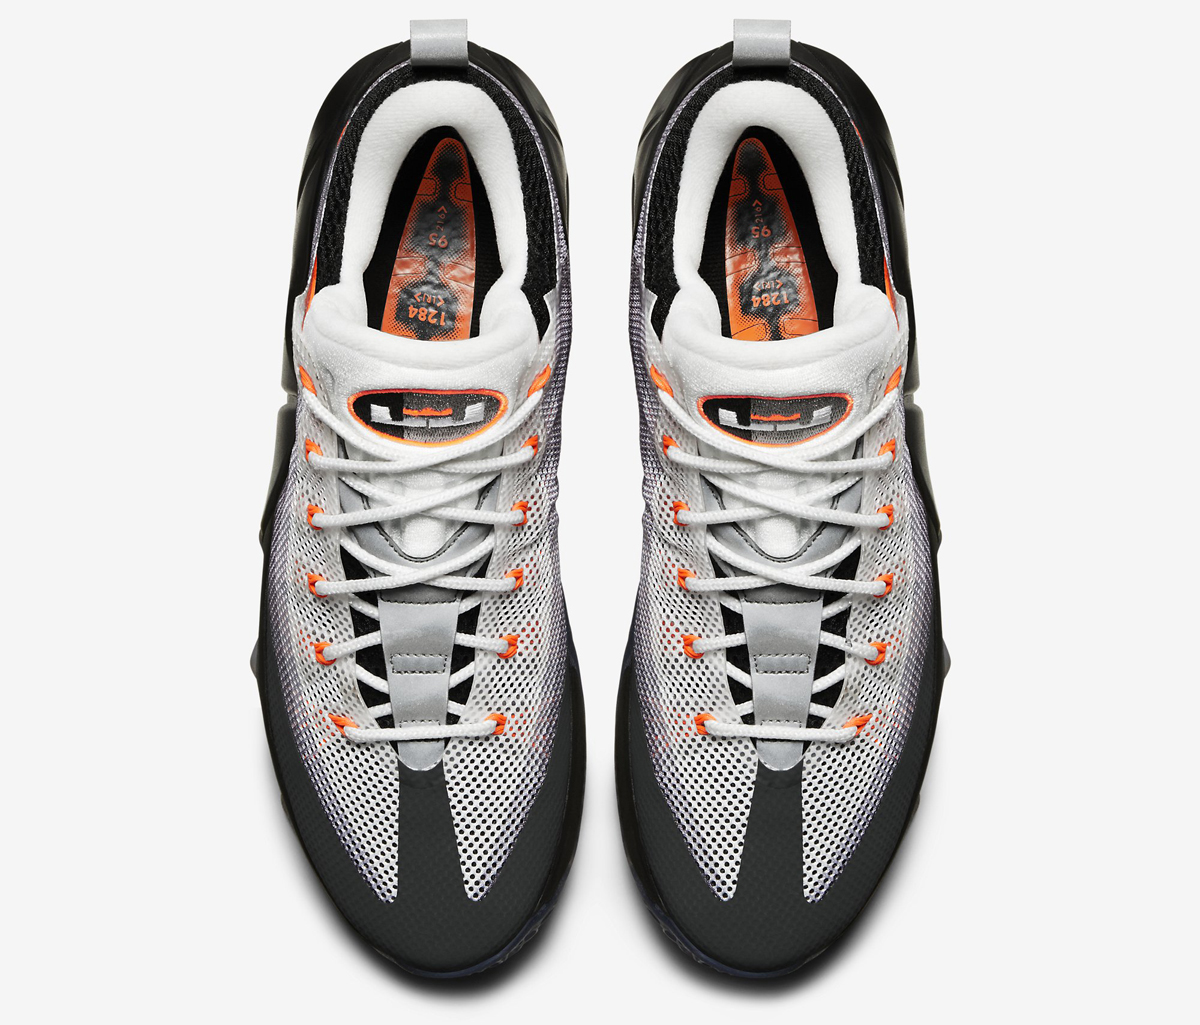 e81716d451 LeBron's Homage to the Nike Air Max 95 Releases Tomorrow | Sole ...